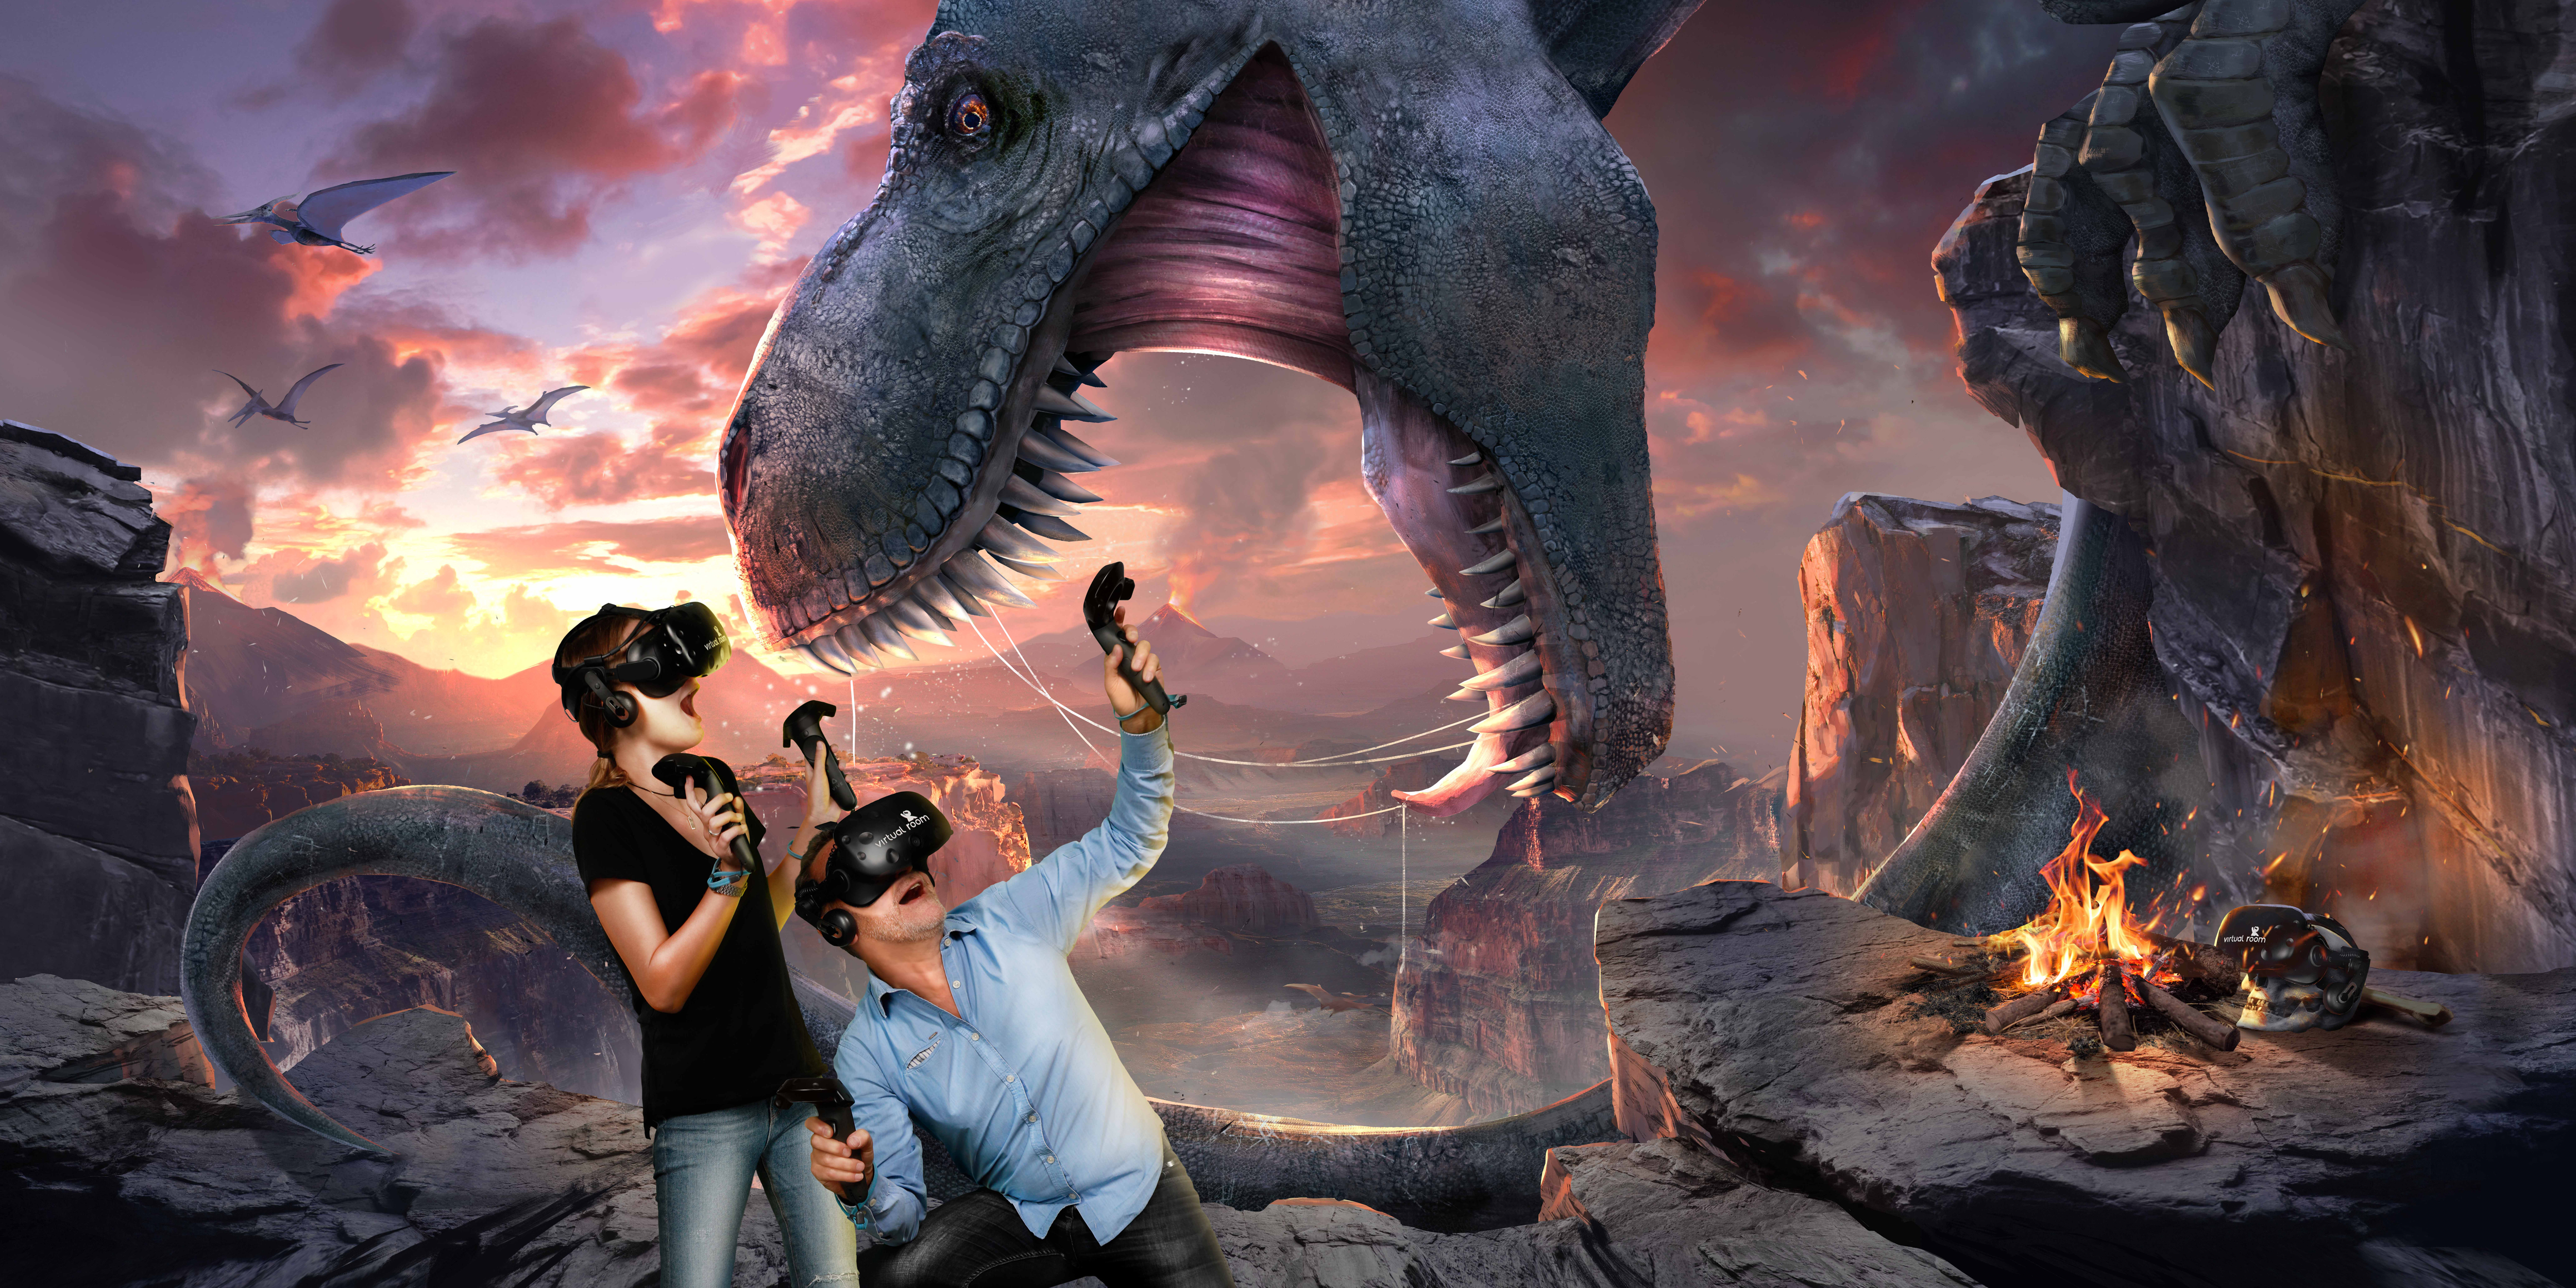 VR Adventure for 1 pax (Peak) at Virtual Room - Get Deals, Cashback and Rewards with ShopBack GO